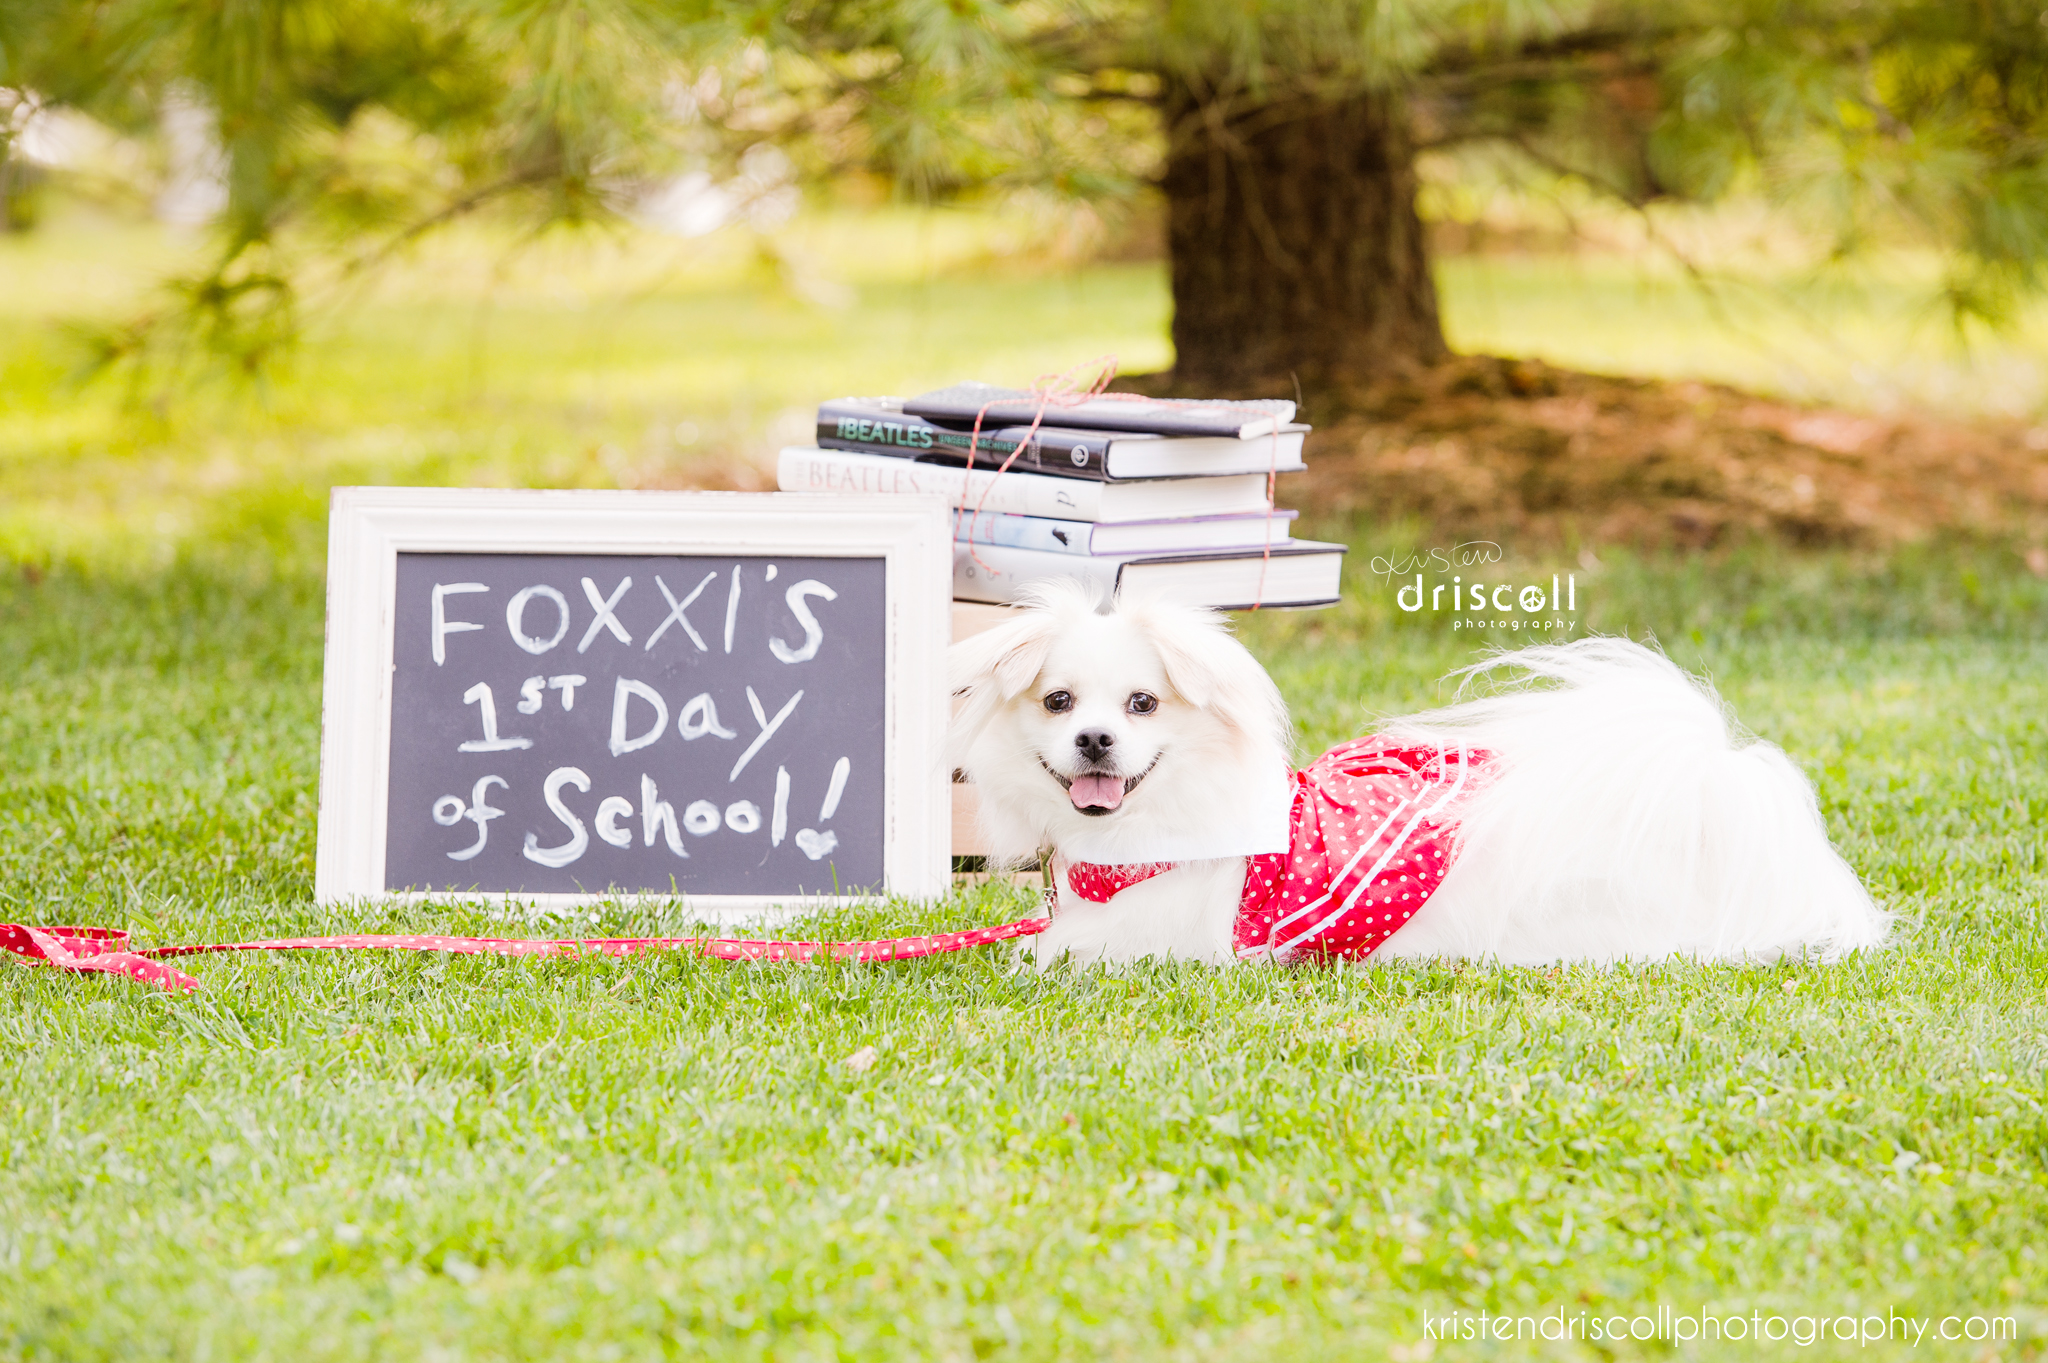 kristen driscoll photography nj photographer pet photography